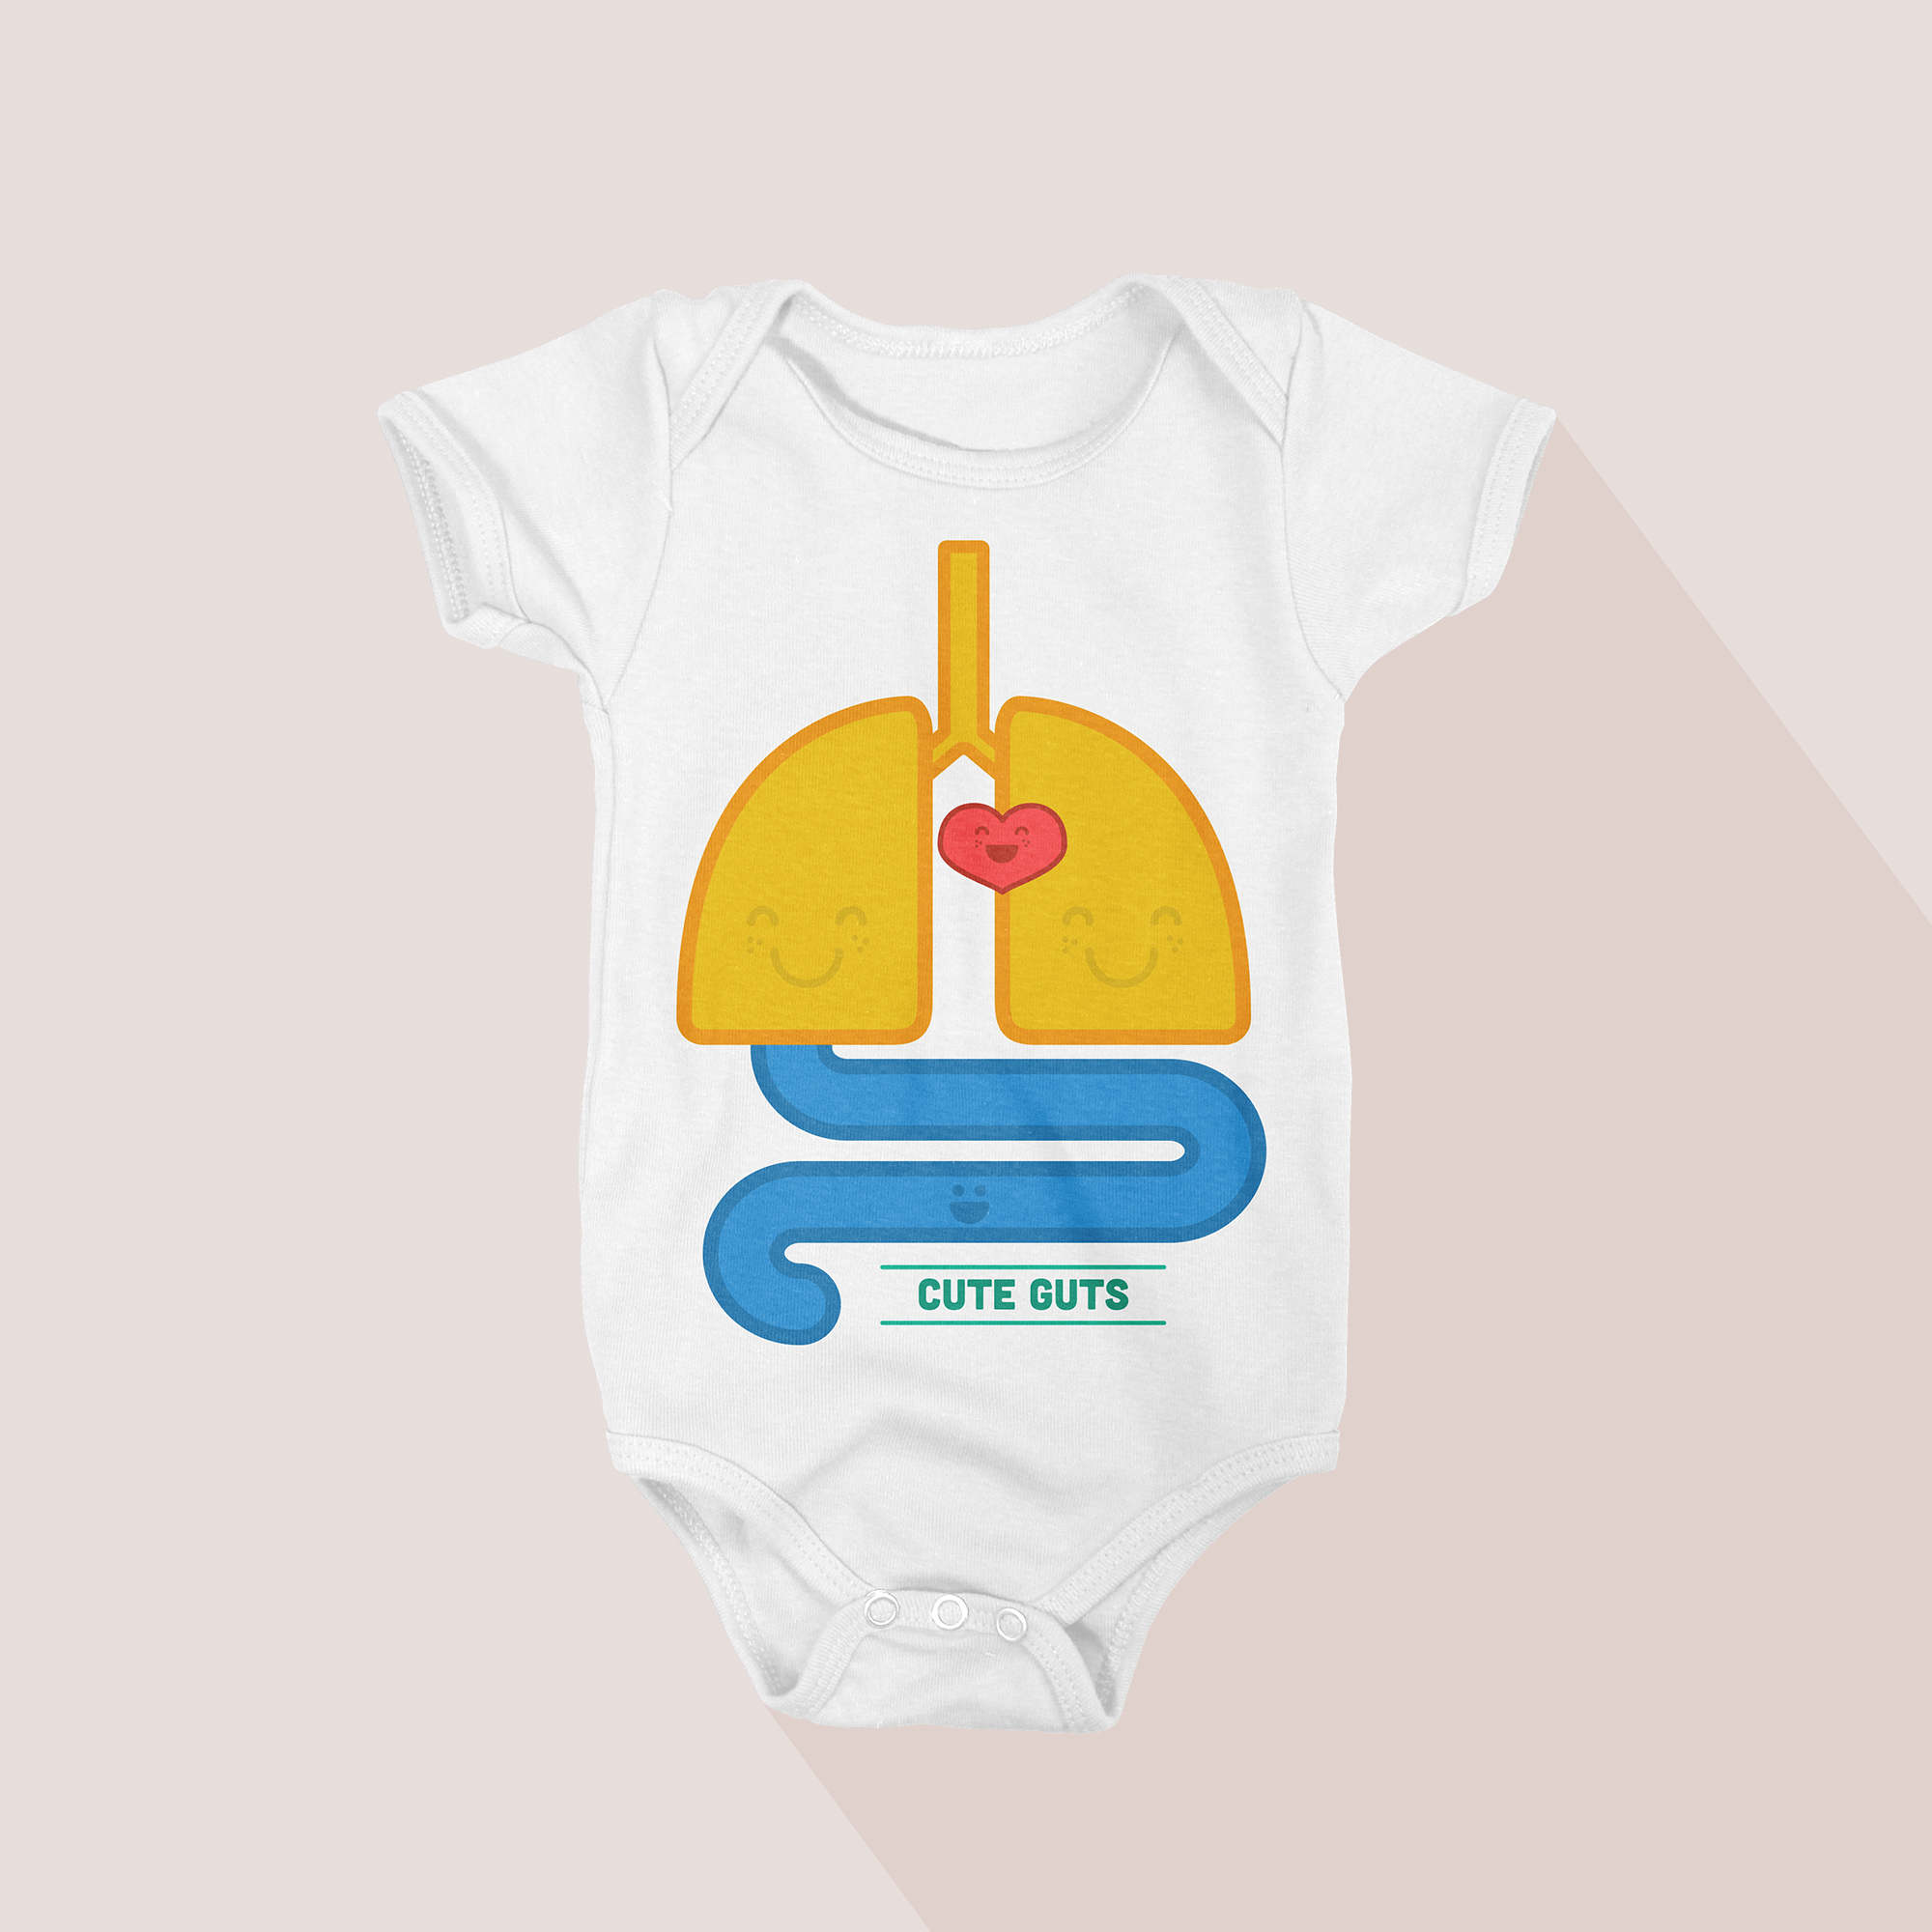 EVEN MY GUTS ARE CUTE  It's simple: Babies are cute from the inside out.   BUY THIS ONESIE